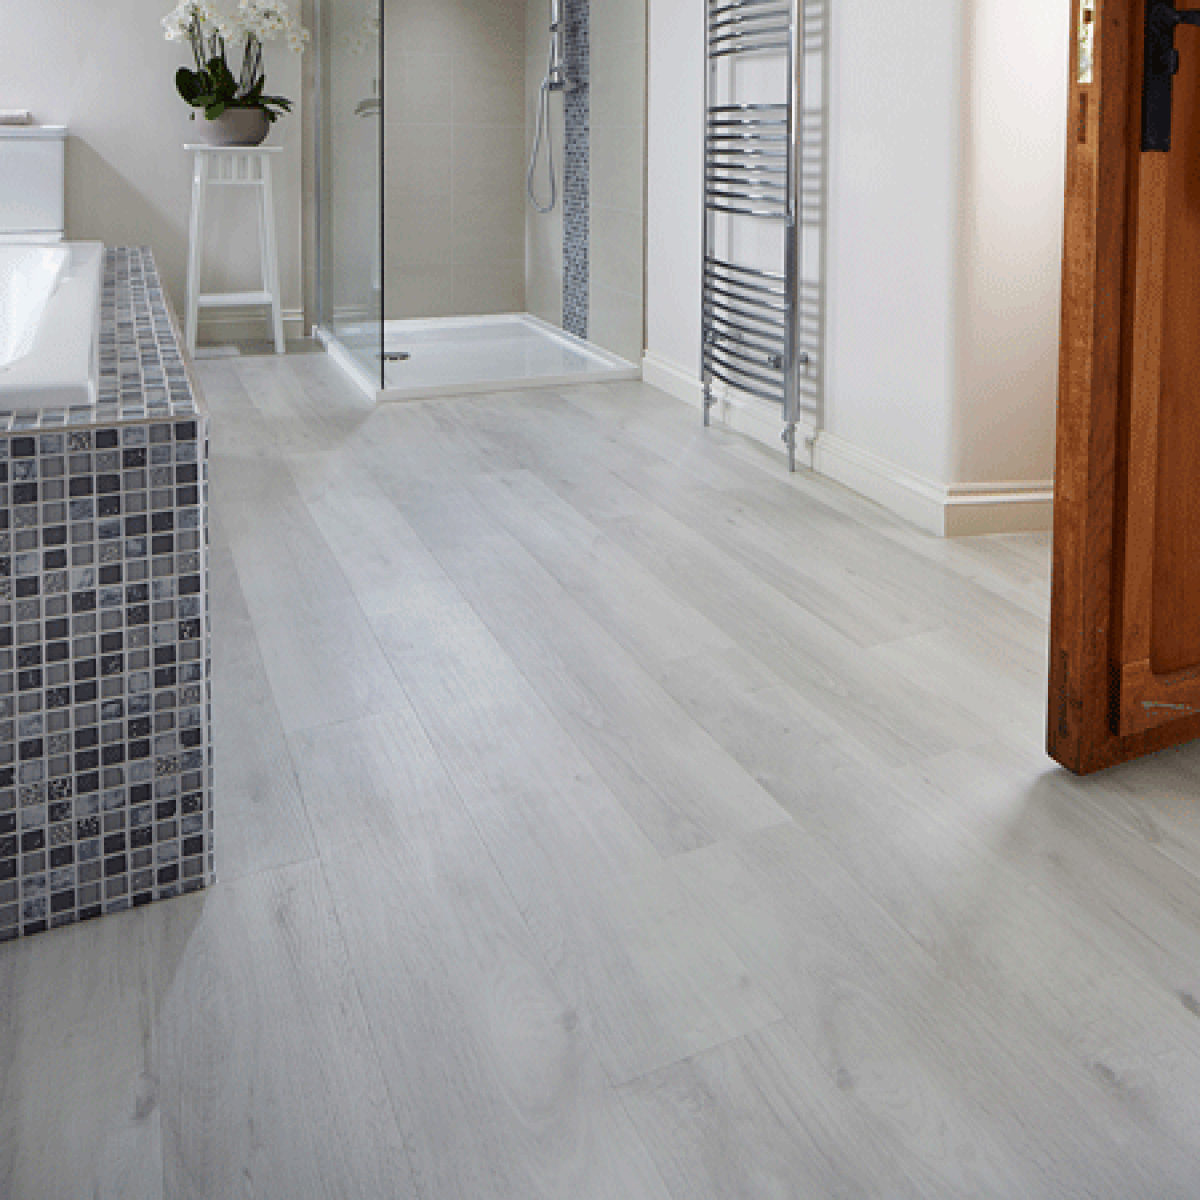 Karndean Van Gogh Vgw80t White Washed Oak Vinyl Flooring